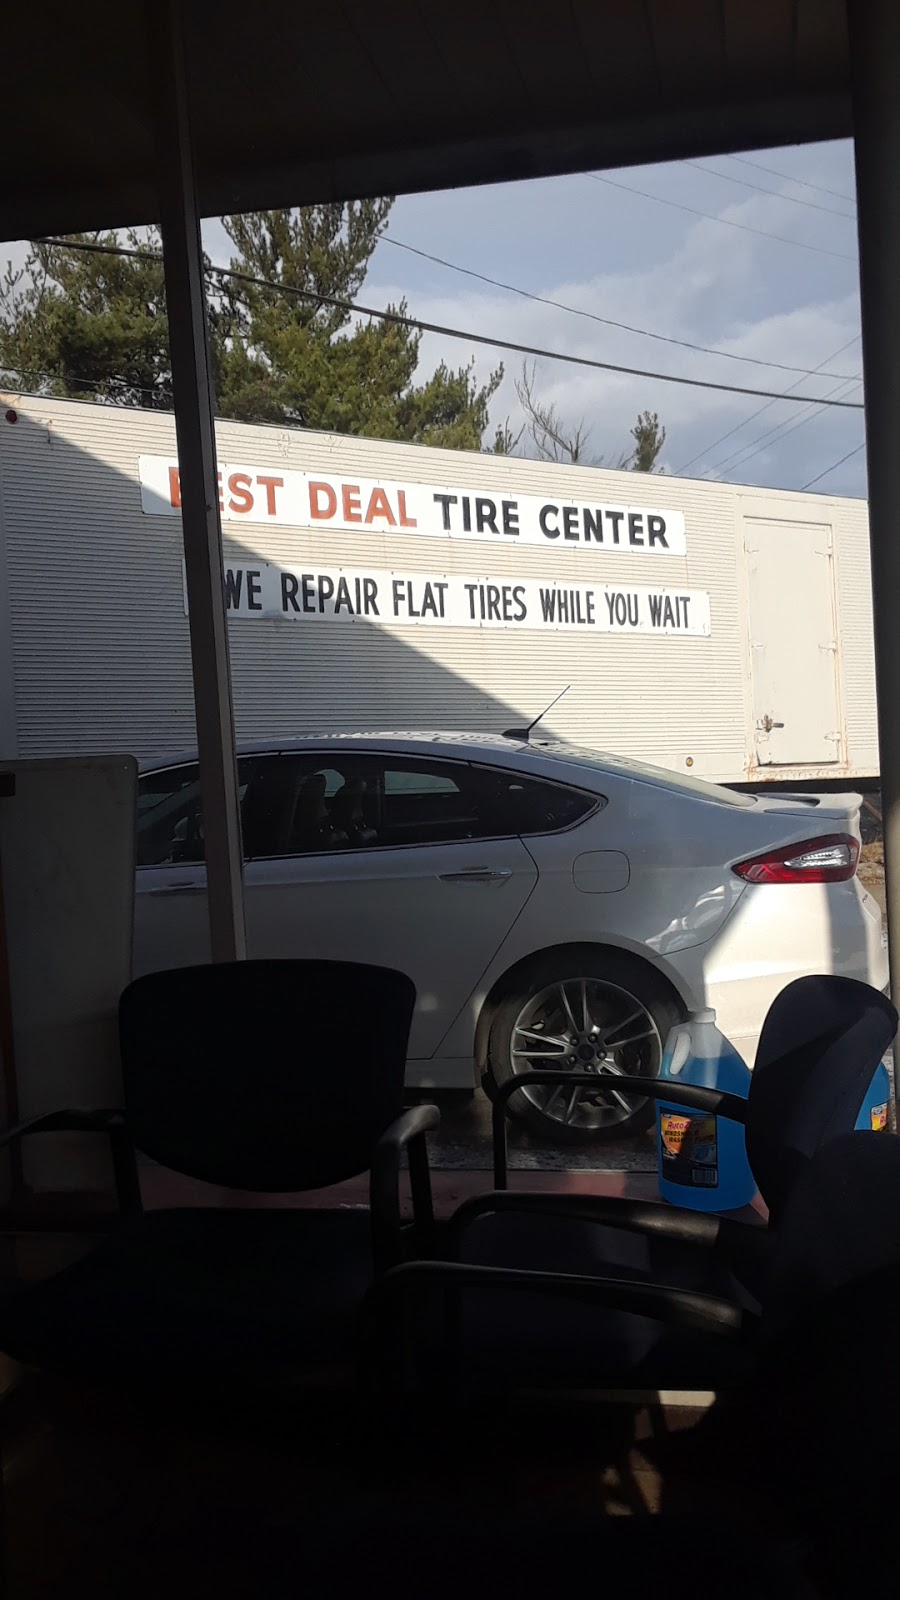 Best Deal Tire Center - car repair    Photo 6 of 7   Address: 89 Clever Rd, McKees Rocks, PA 15136, USA   Phone: (412) 331-1012